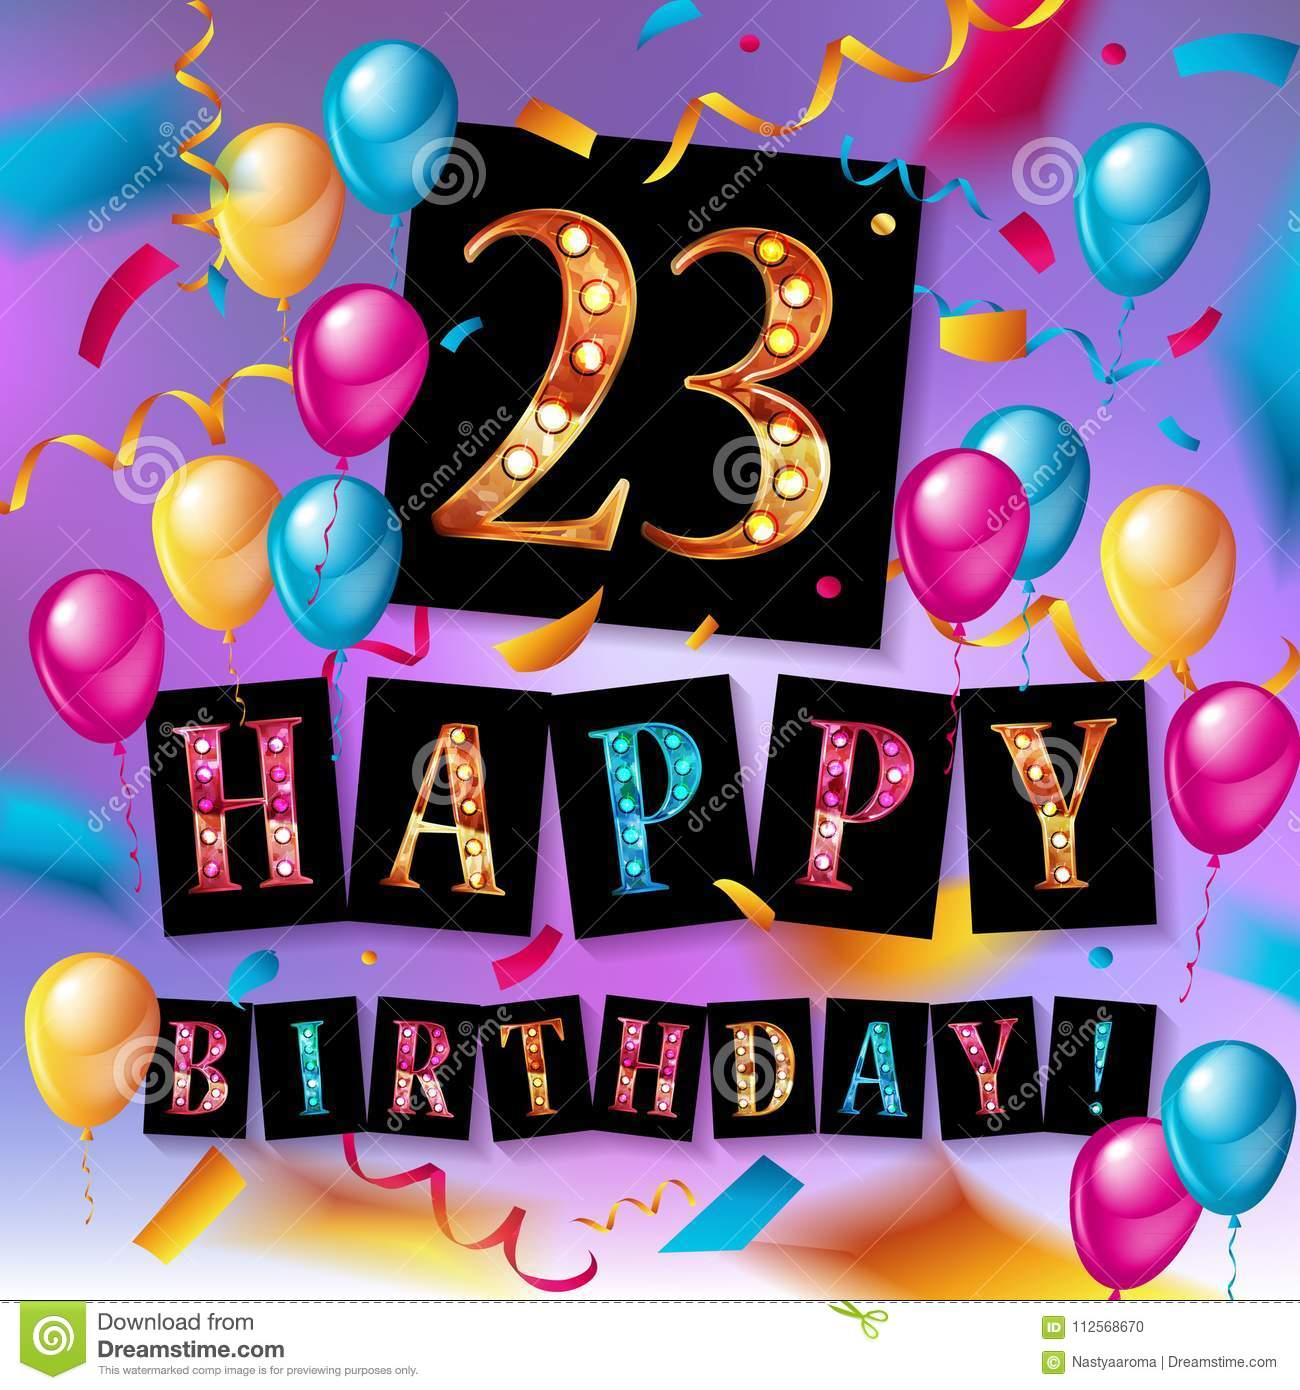 23 Years Celebration Happy Birthday Greeting Card With Candles Confetti And Balloons